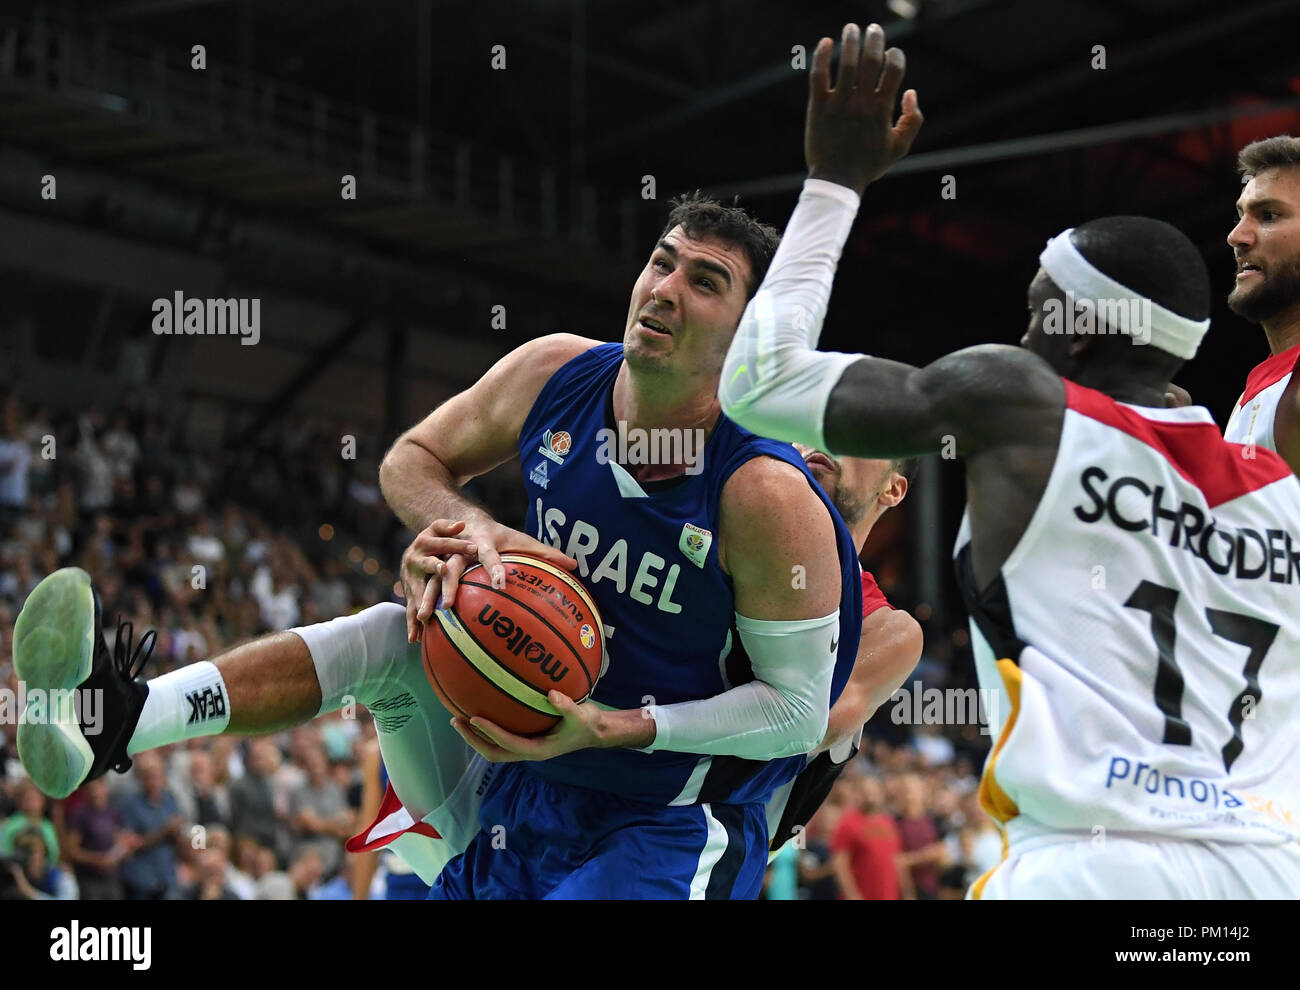 Leipzig, Saxony. 16th Sep, 2018. Basketball: World Cup Qualification, Germany vs Israel, Round 2, Group L, Day 2 at the Arena Leipzig. Israel's Jake Cohen (L) taking possession of the ball under the basket against Germany's Dennis Schroeder. Credit: Hendrik Schmidt/dpa-Zentralbild/dpa/Alamy Live News - Stock Image